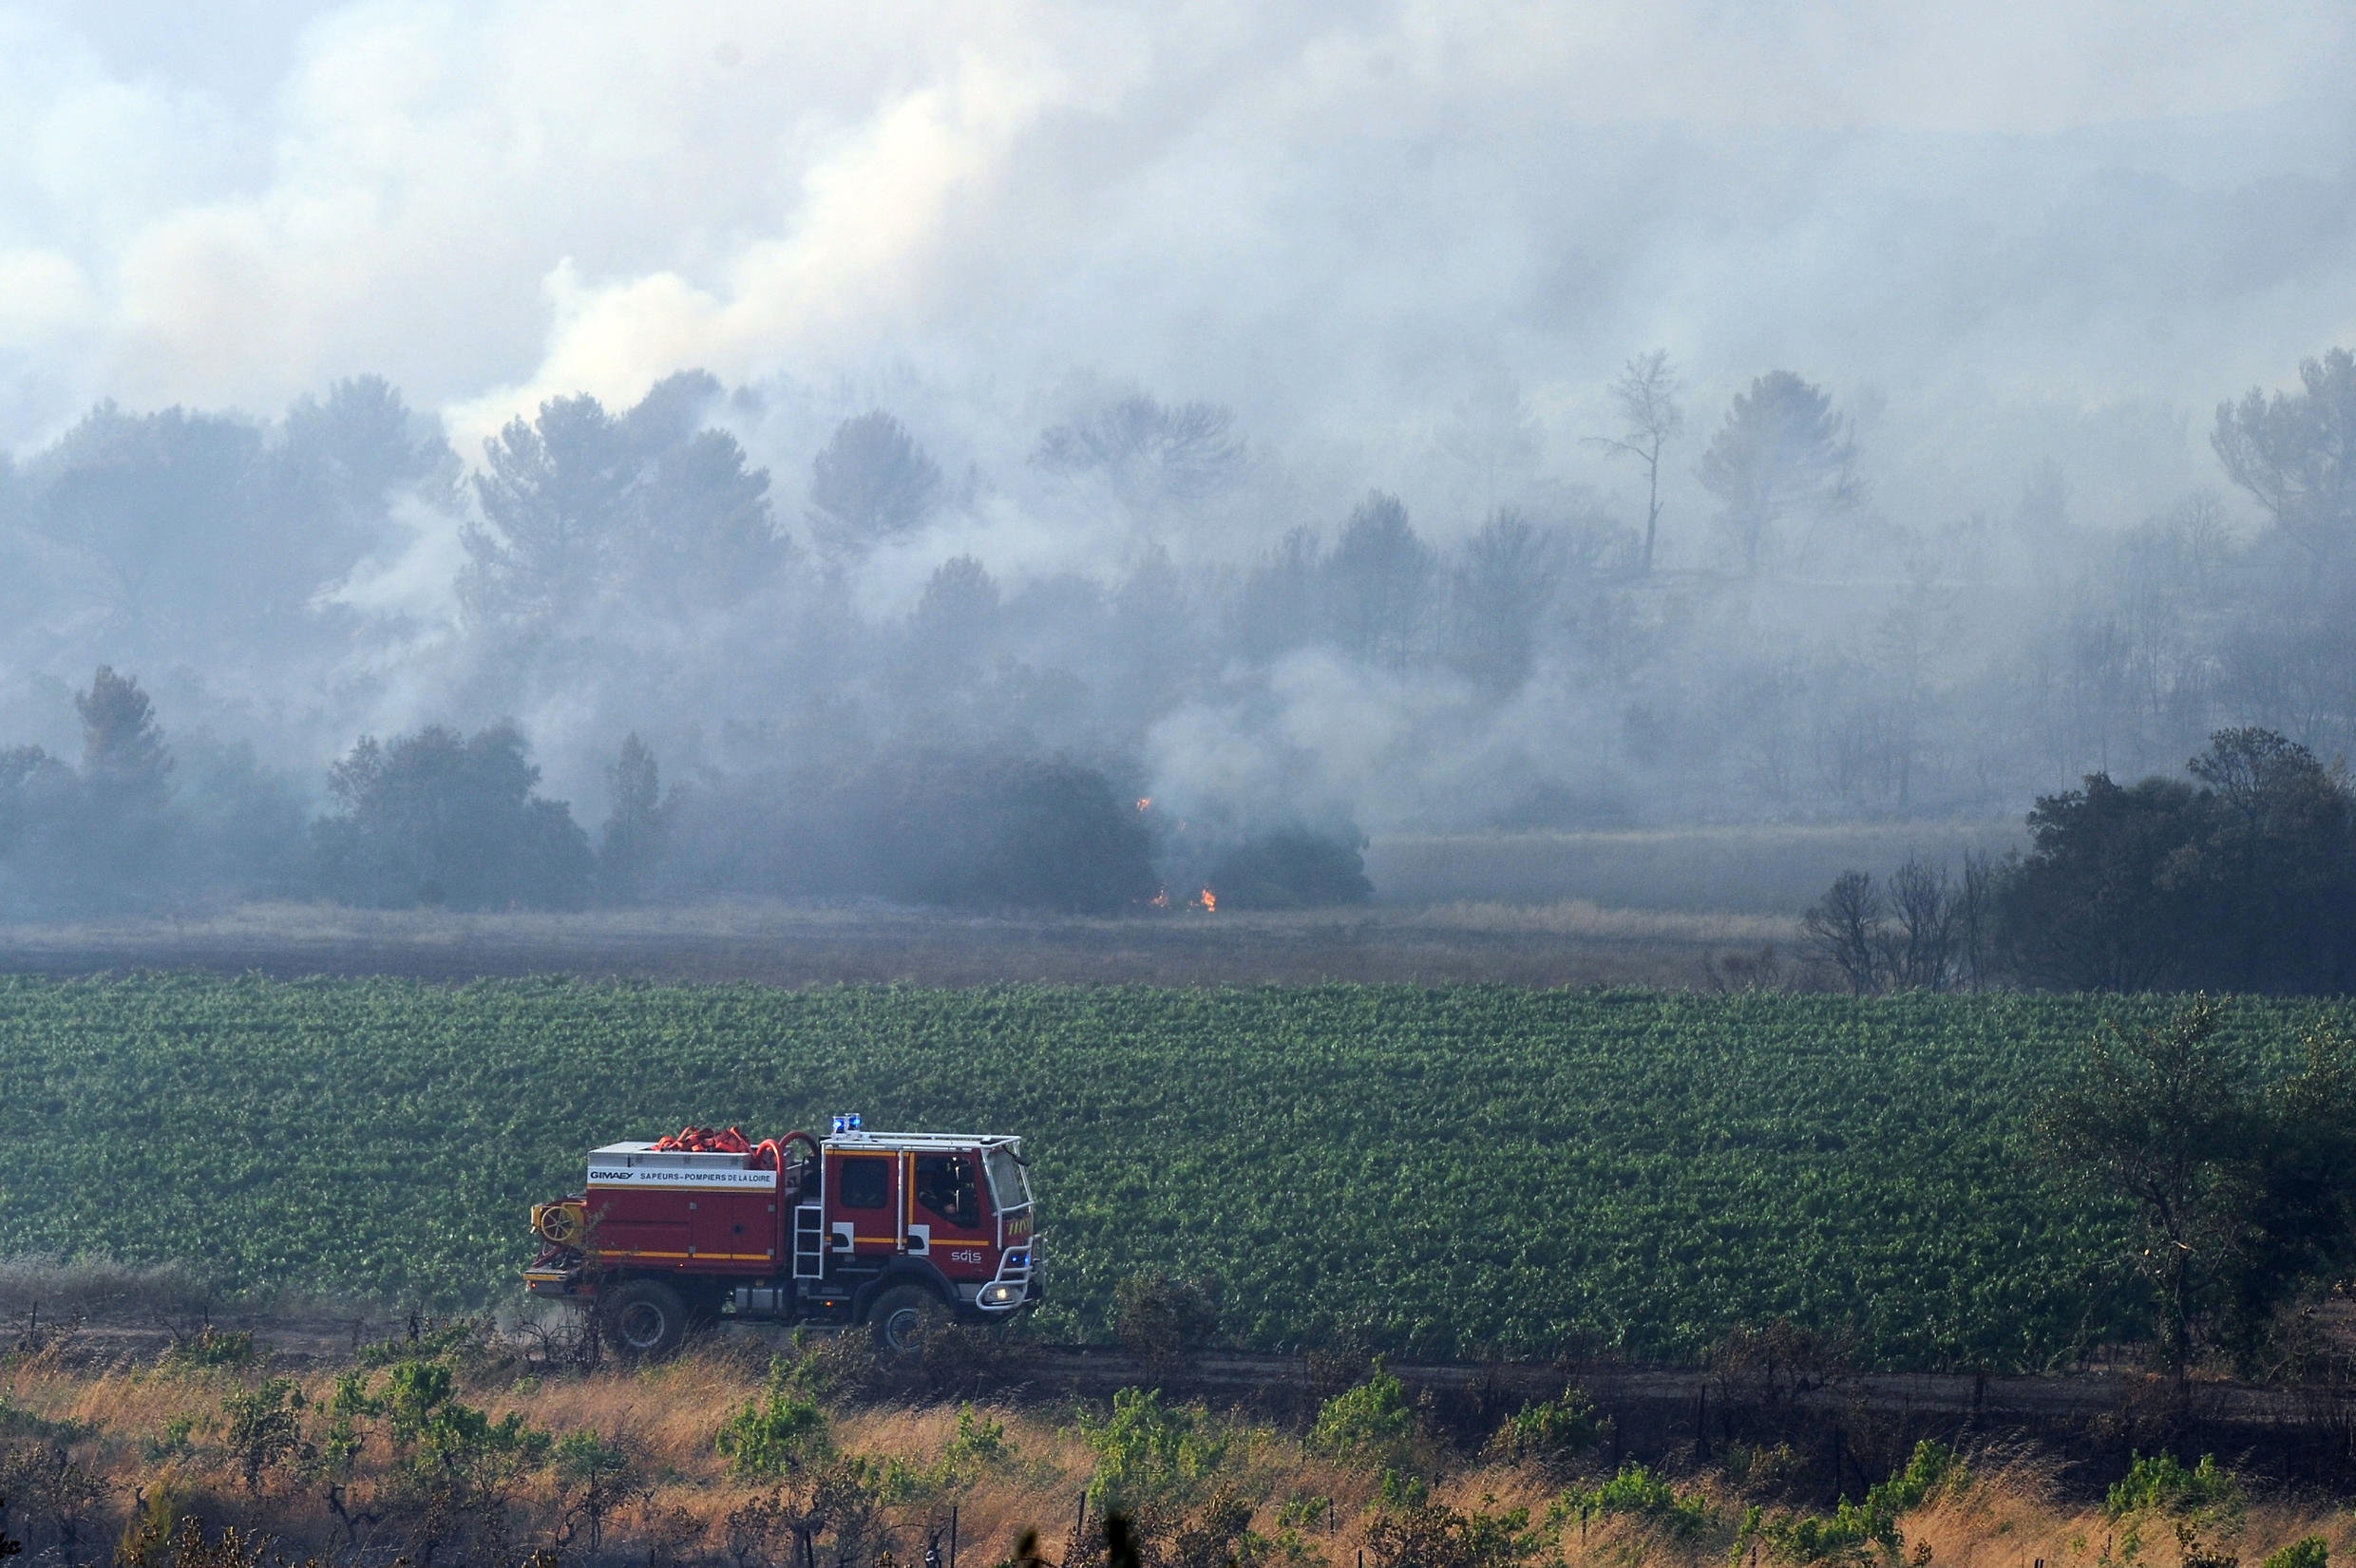 Firefighters try to extinguish the forest fire in Saint Cannat, near Aix en Provence